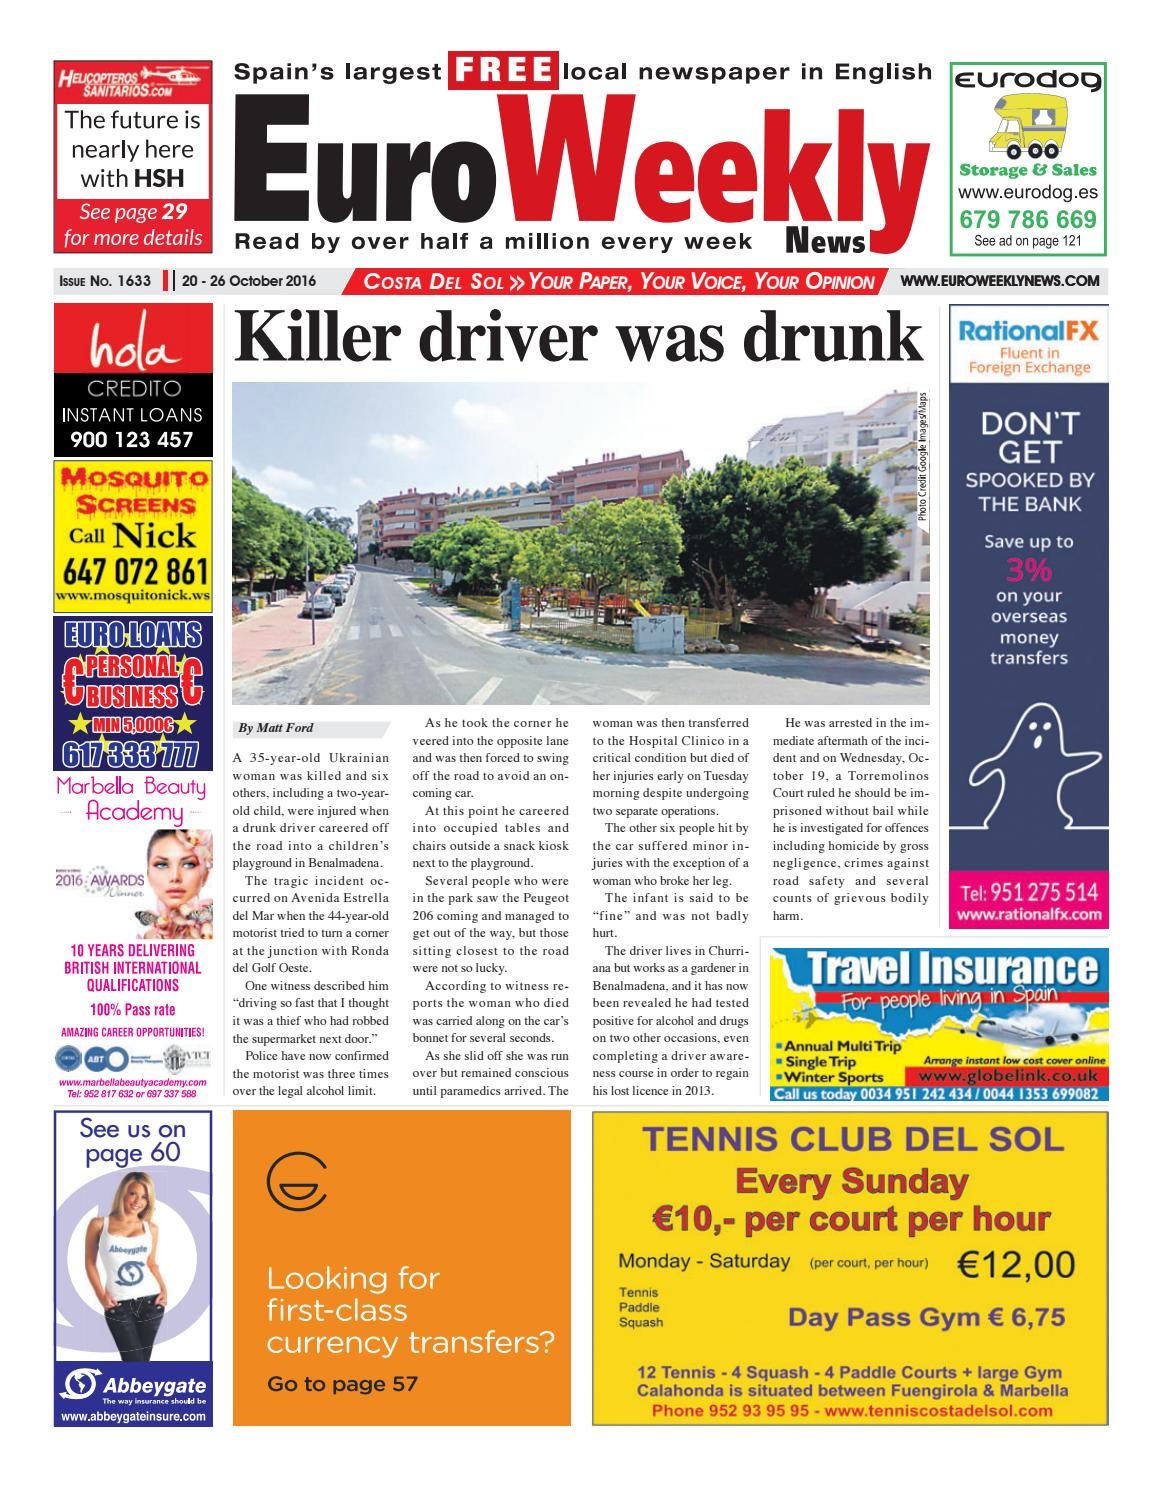 Euro Weekly News - Costa del Sol 20 - 26 October 2016 Issue 1633 by Euro  Weekly News Media S.A. - issuu 2d5f4d3d6f8